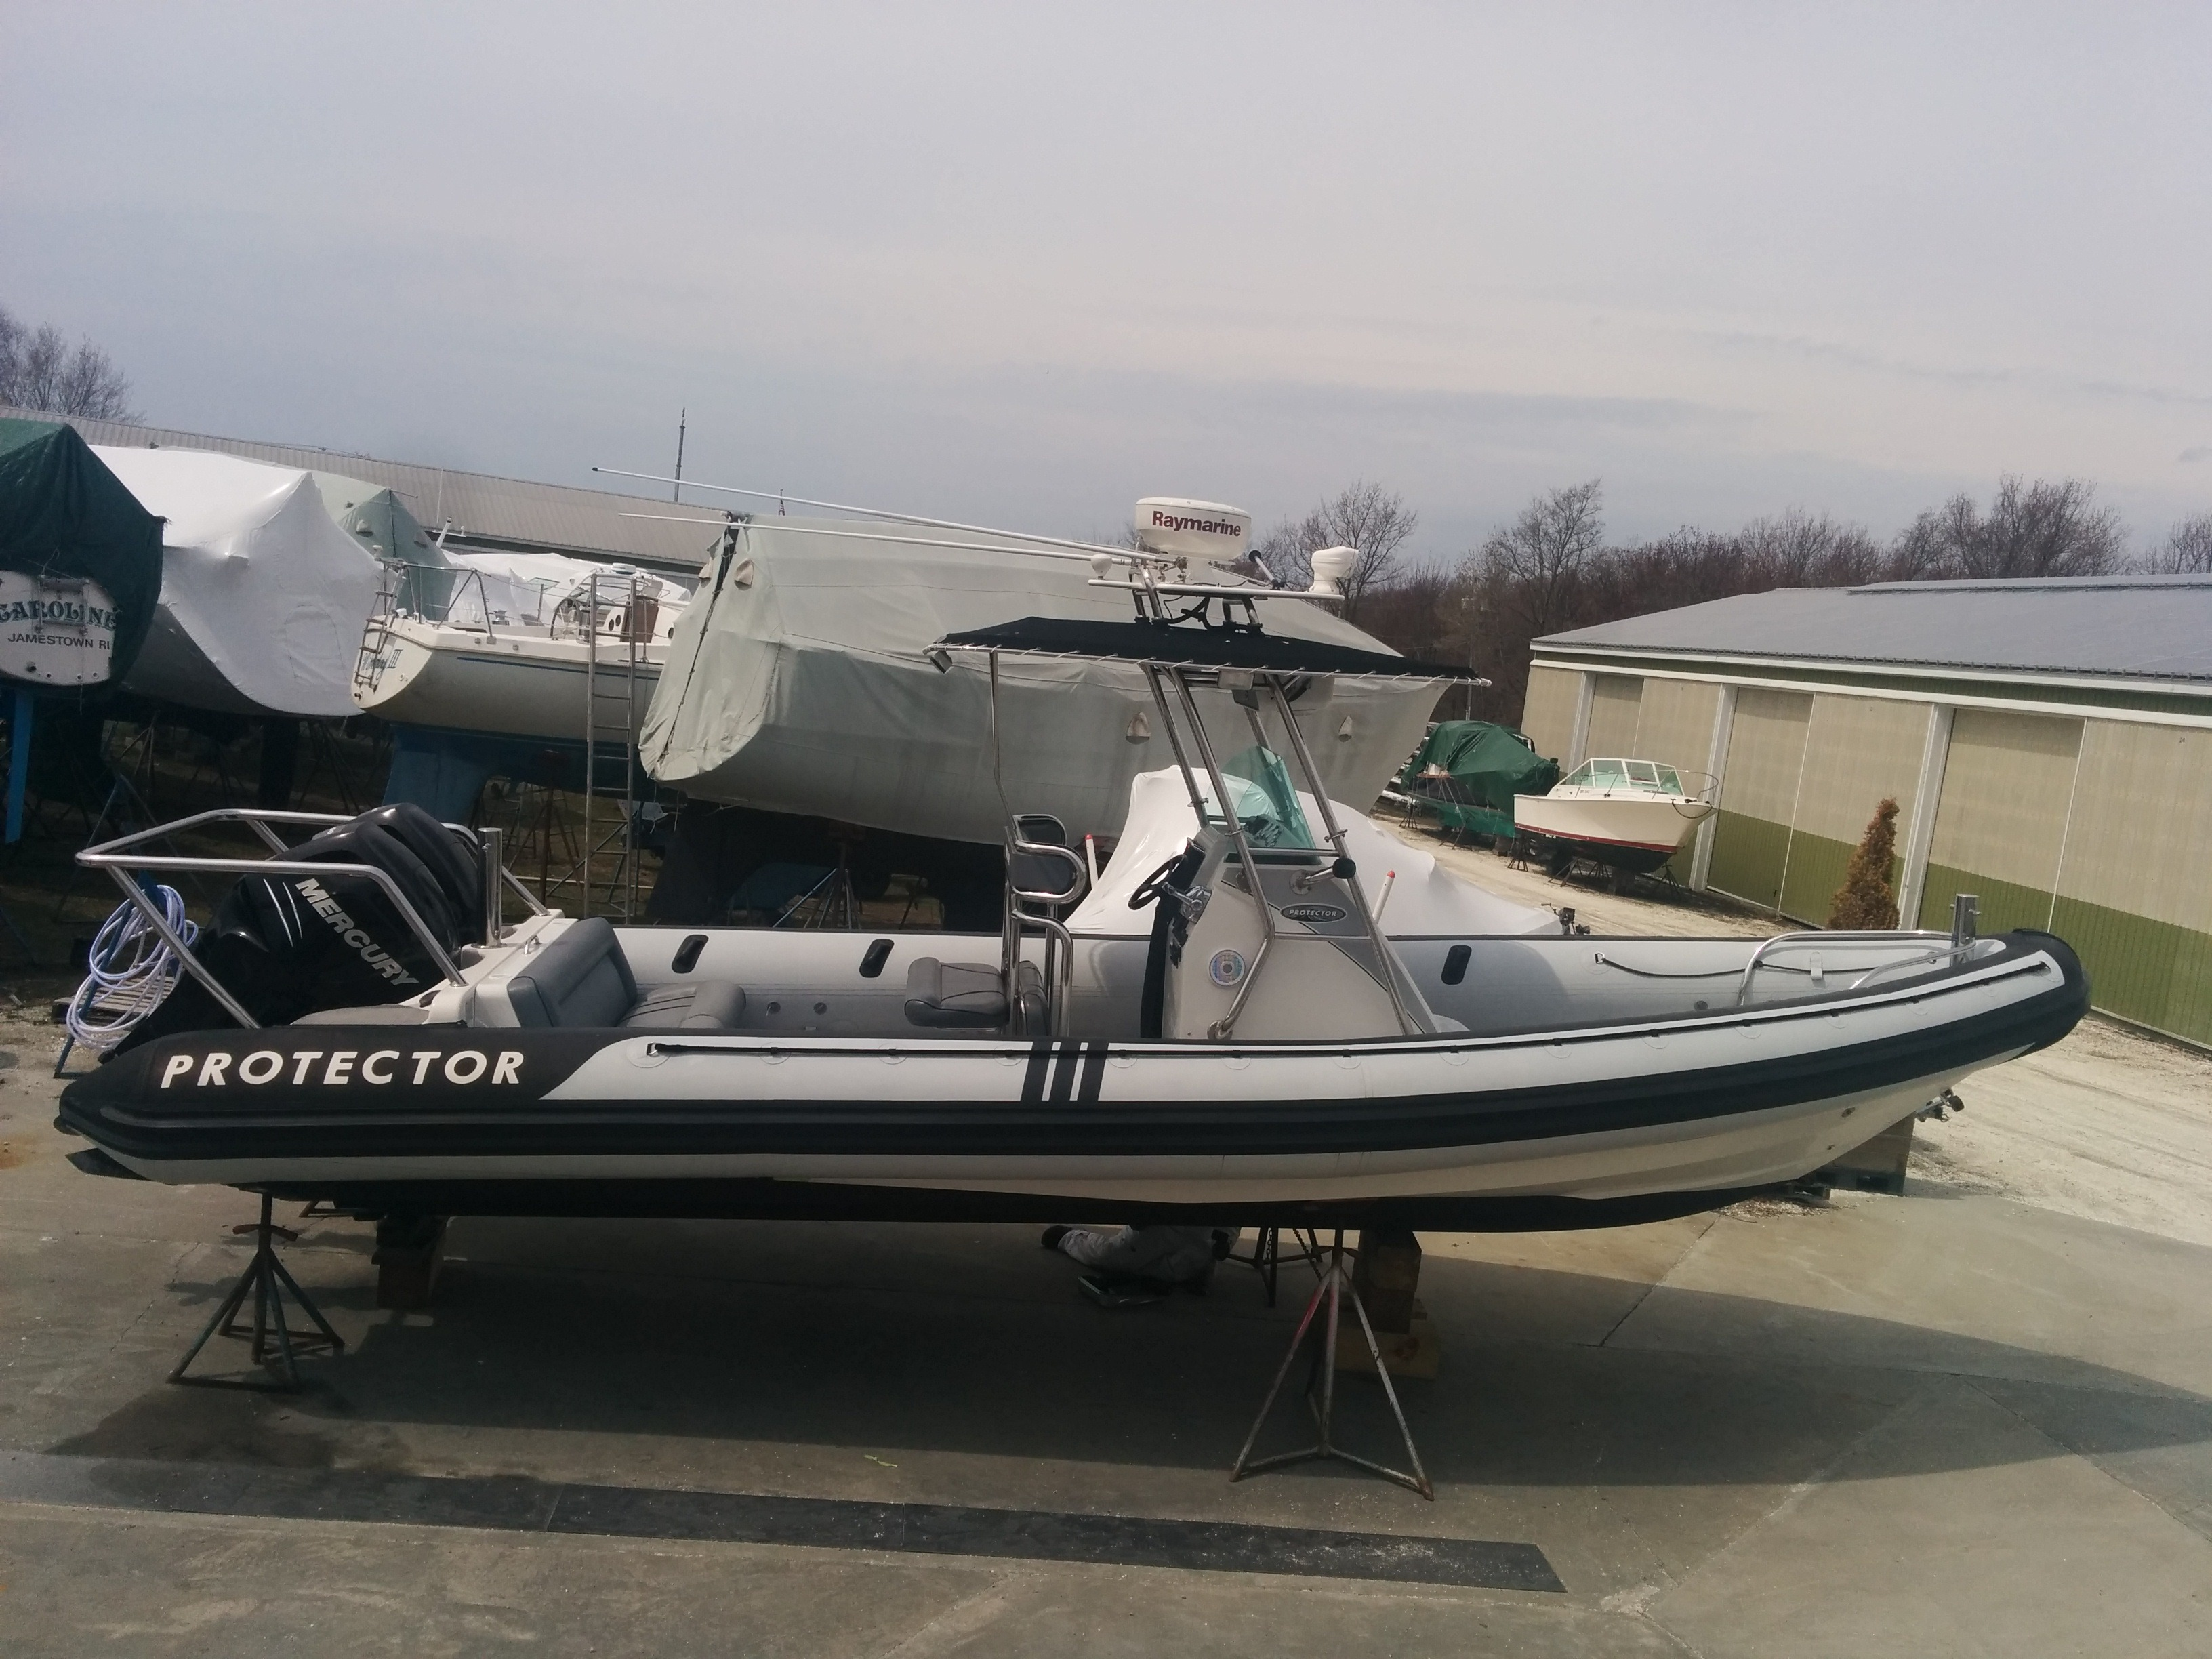 Protector 28ft center console